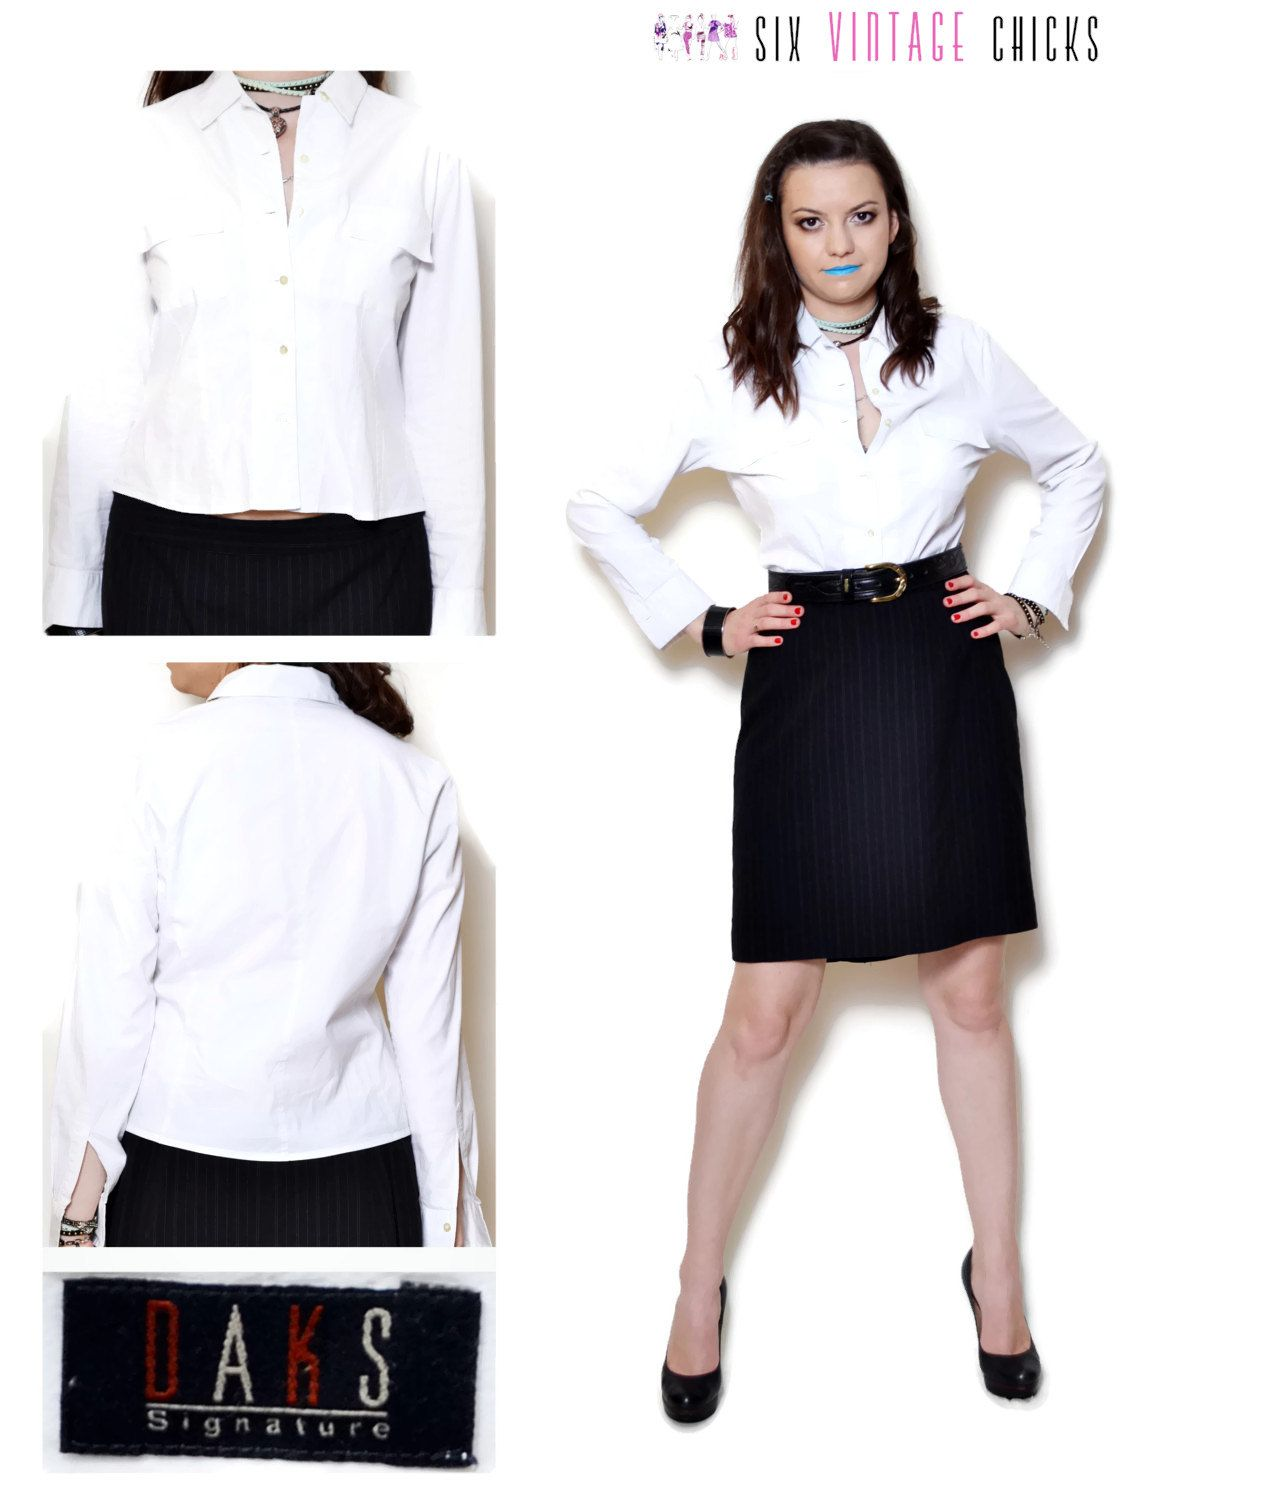 5e7cb1900d9 white shirt vintage women clothing long sleeve shirt sexy tops office  clothes 90s clothing formal blouse minimalist button down shirt by  SixVintageChicks on ...